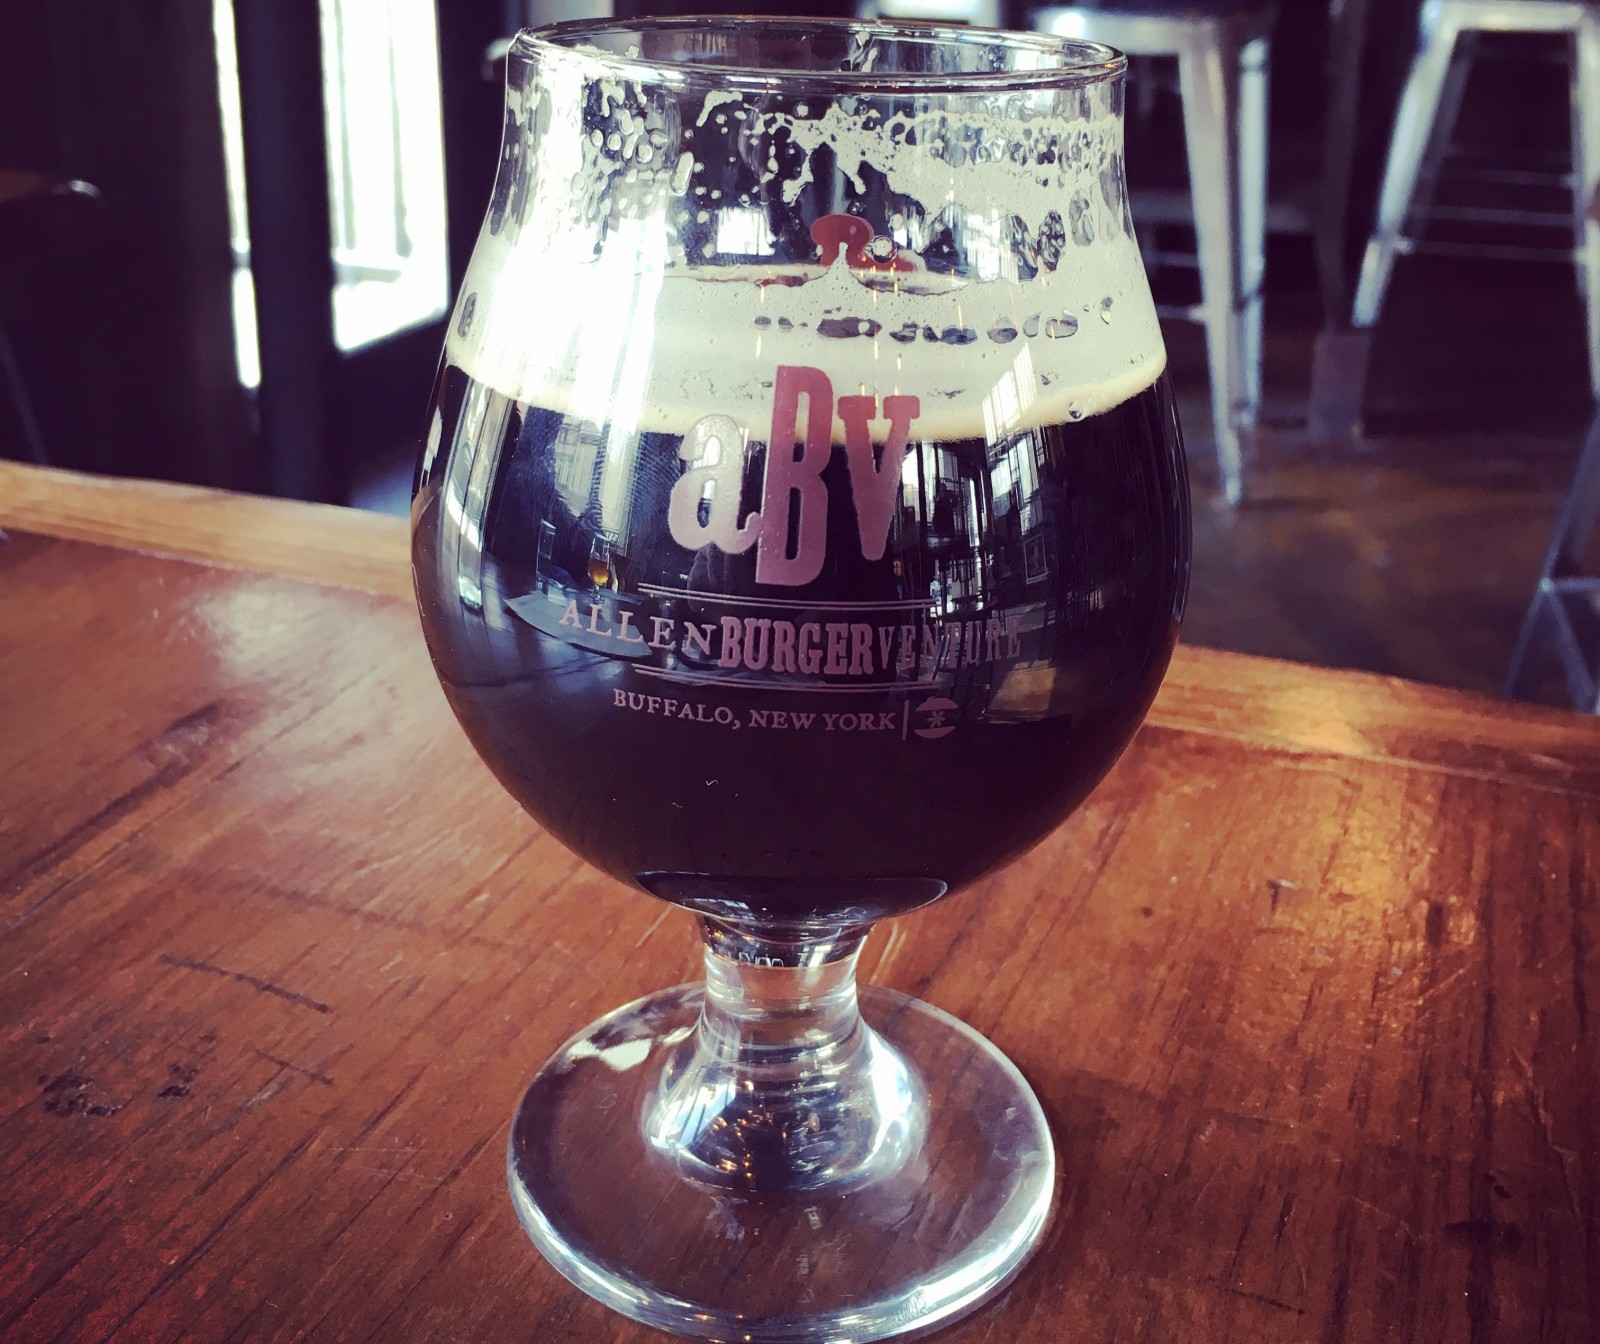 Ommegang's Lovely, Dark and Deep Stout is a taste of winter at Allentown's ABV.